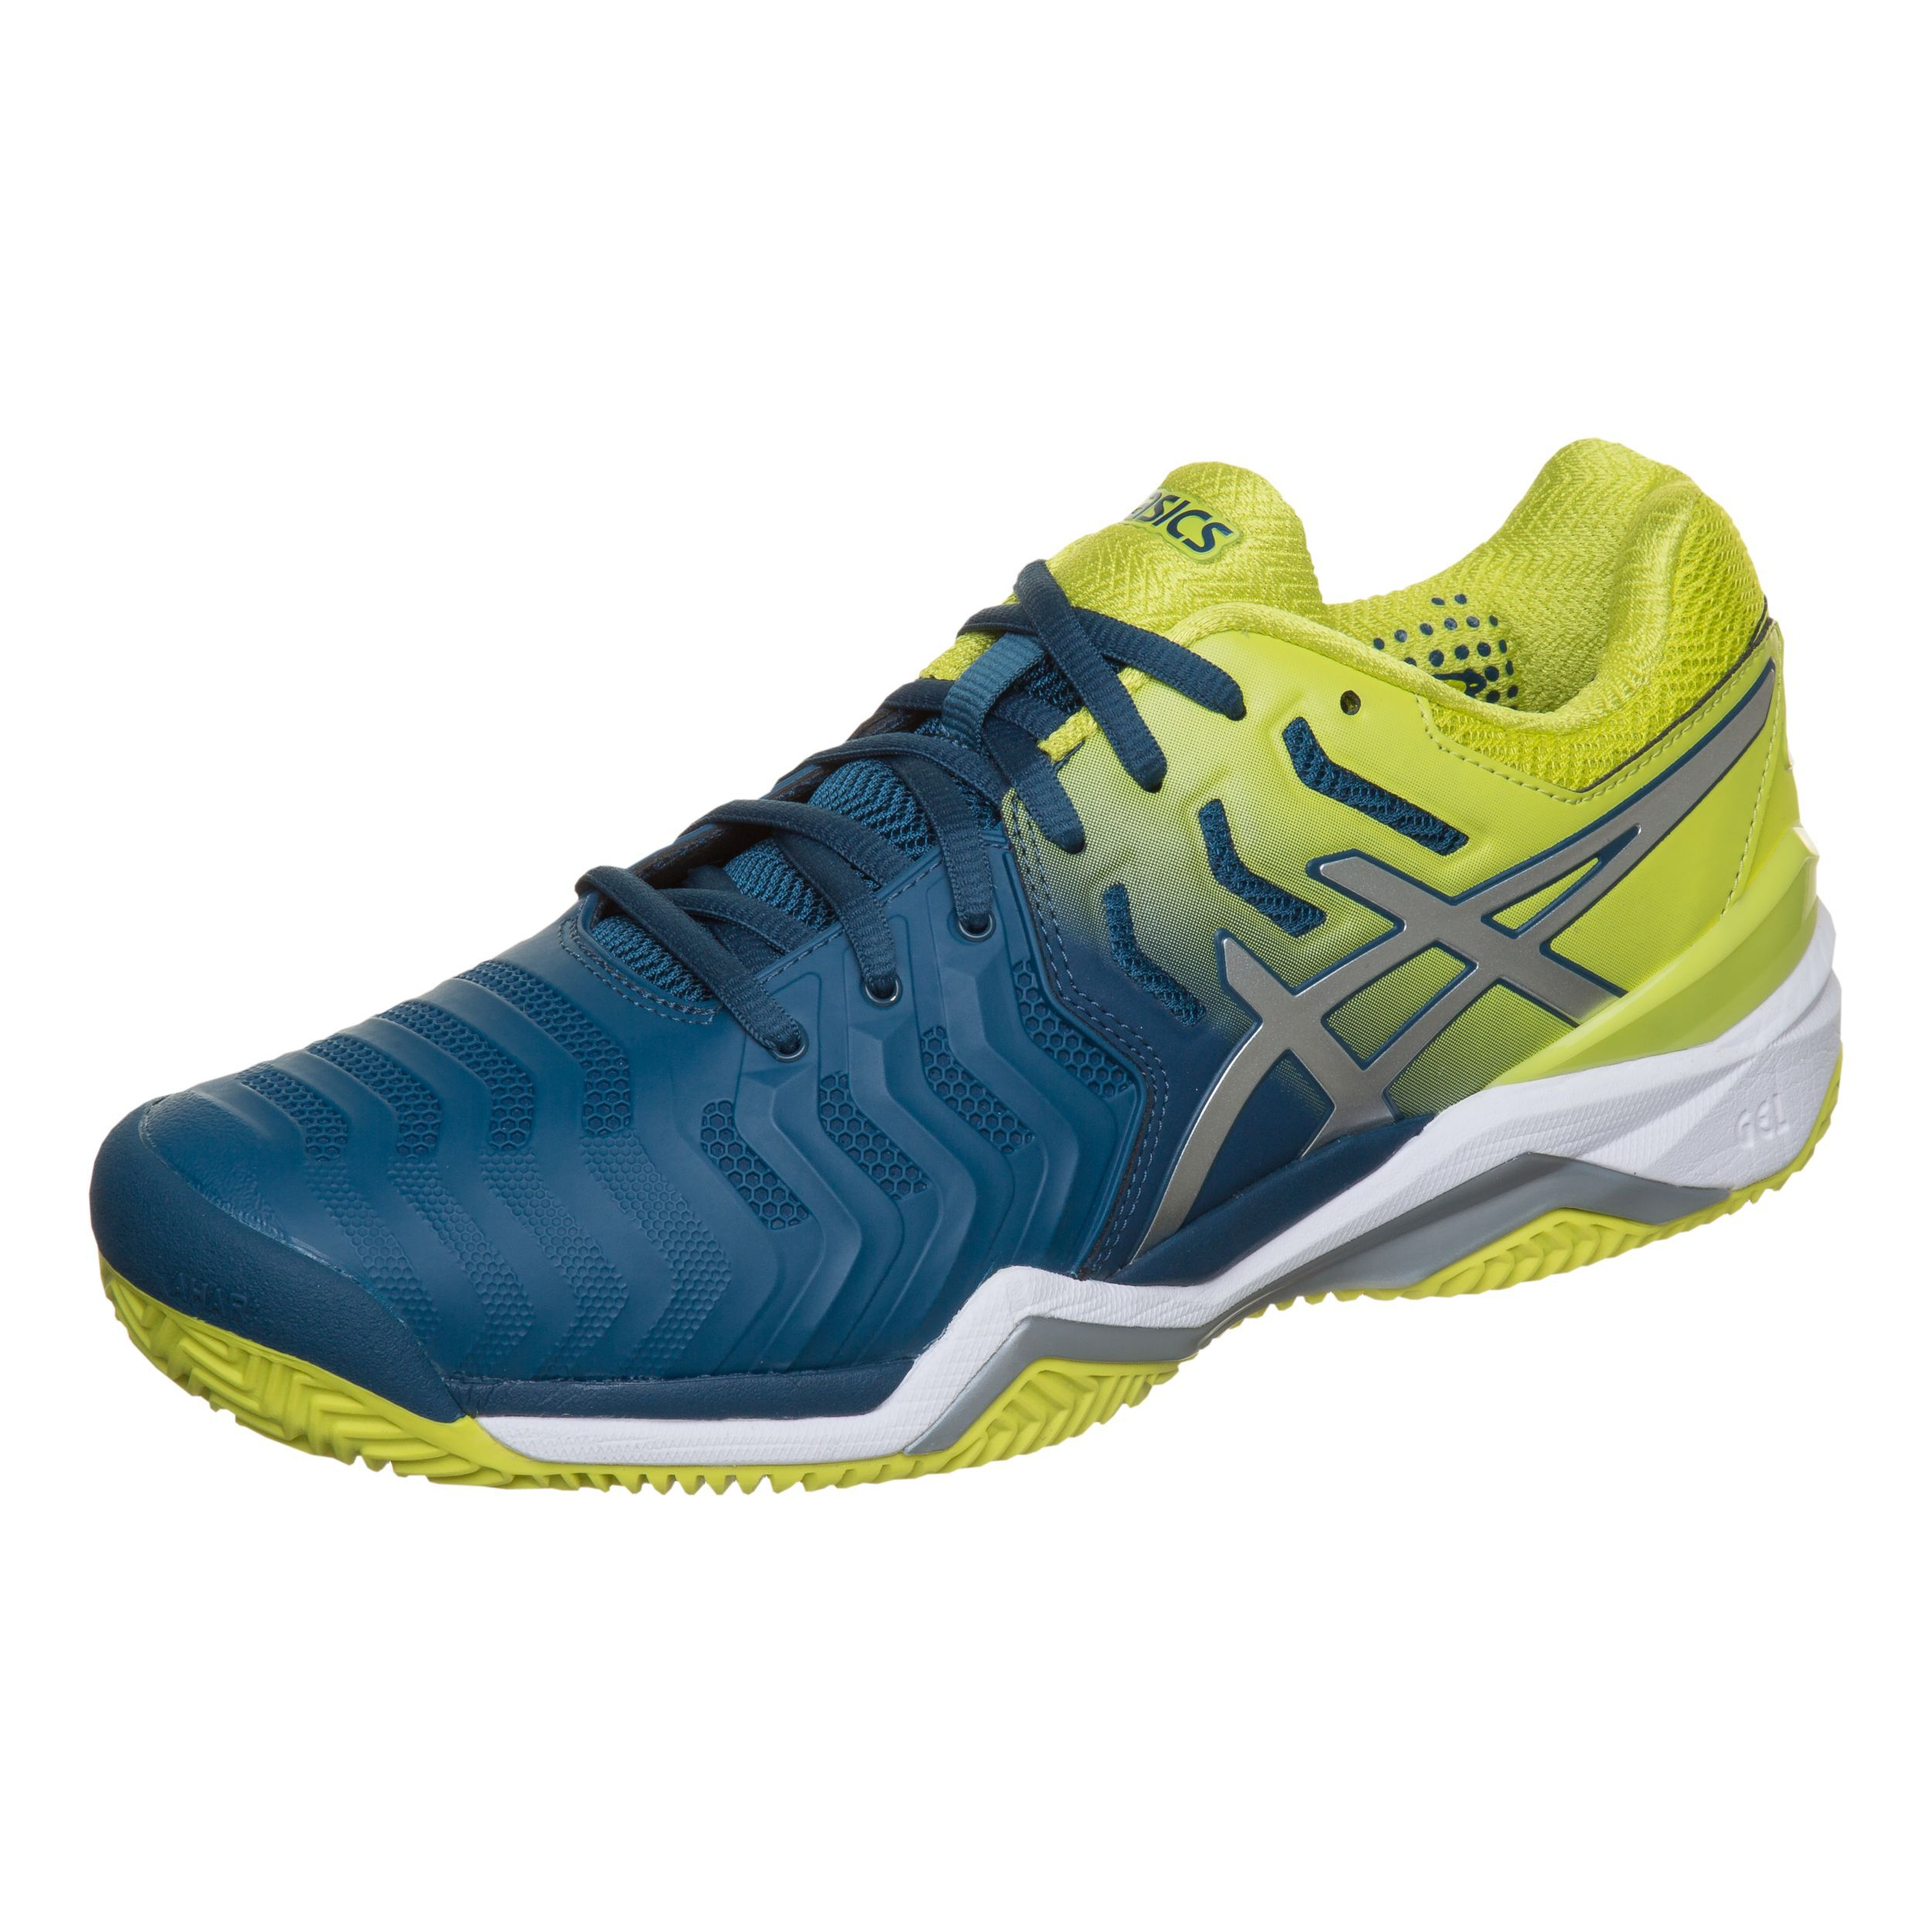 Asics Gel Resolution 7 Clay Sandplatzschuh Herren Blau